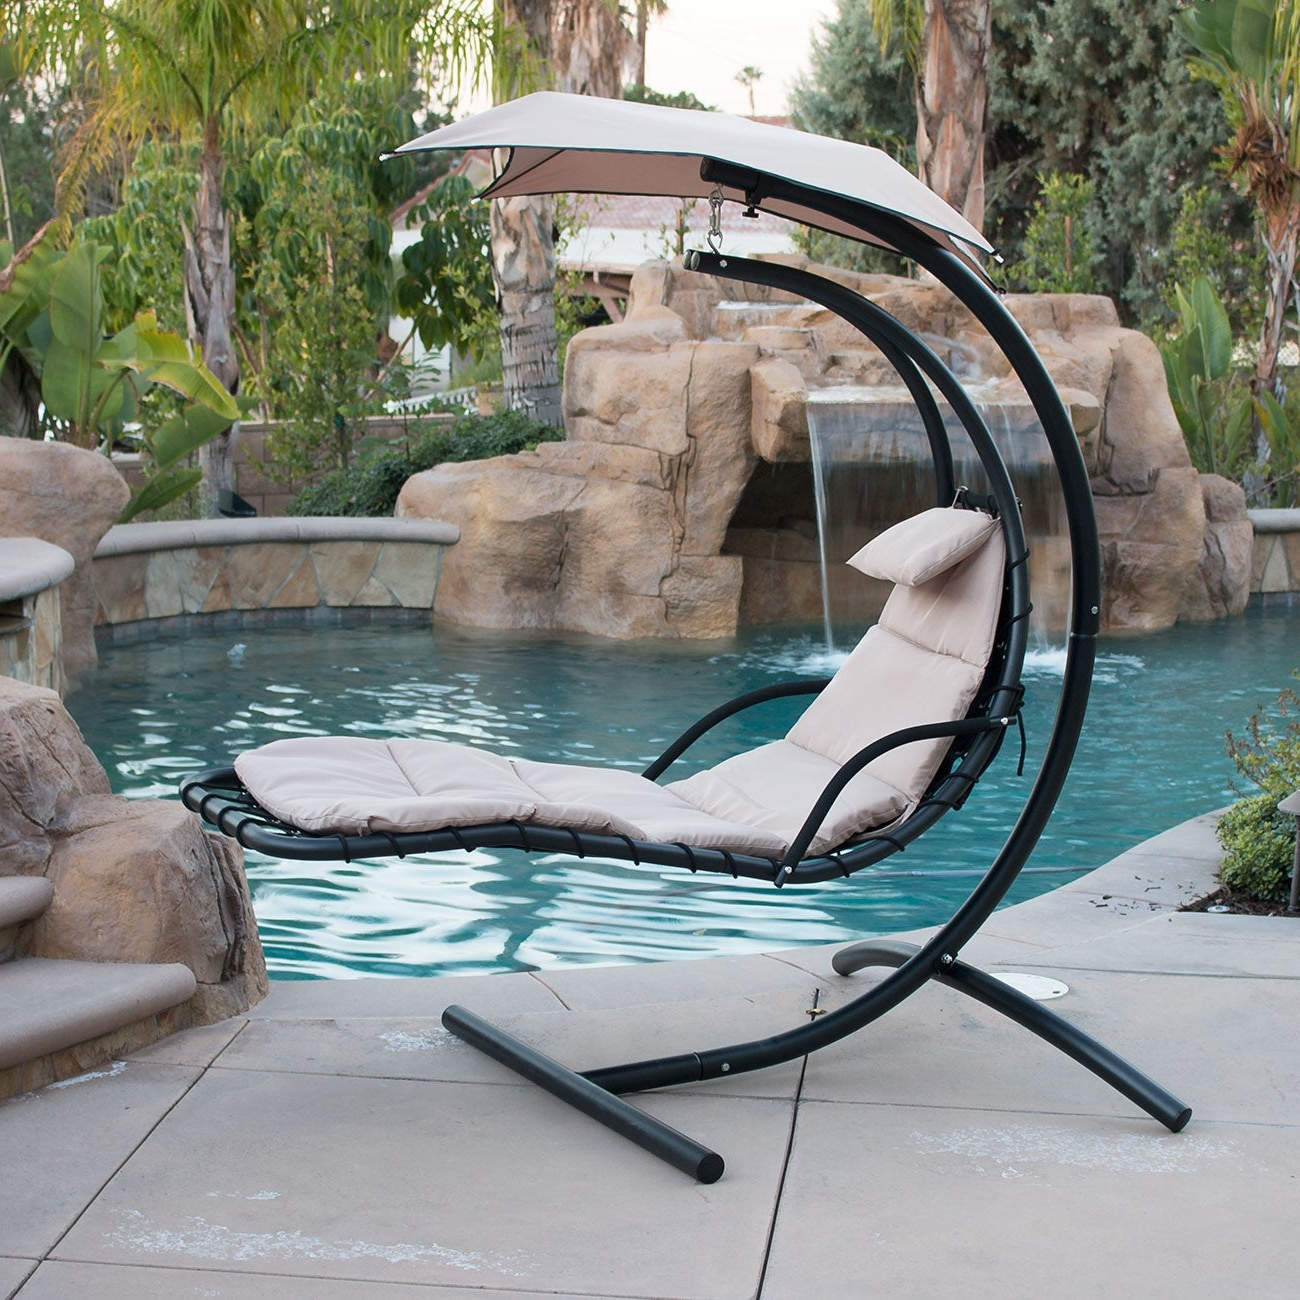 Well Liked Canopy Patio Porch Swing With Stand Regarding Patio & Garden Furniture Hanging Chaise Lounger Chair Arc (Gallery 25 of 30)